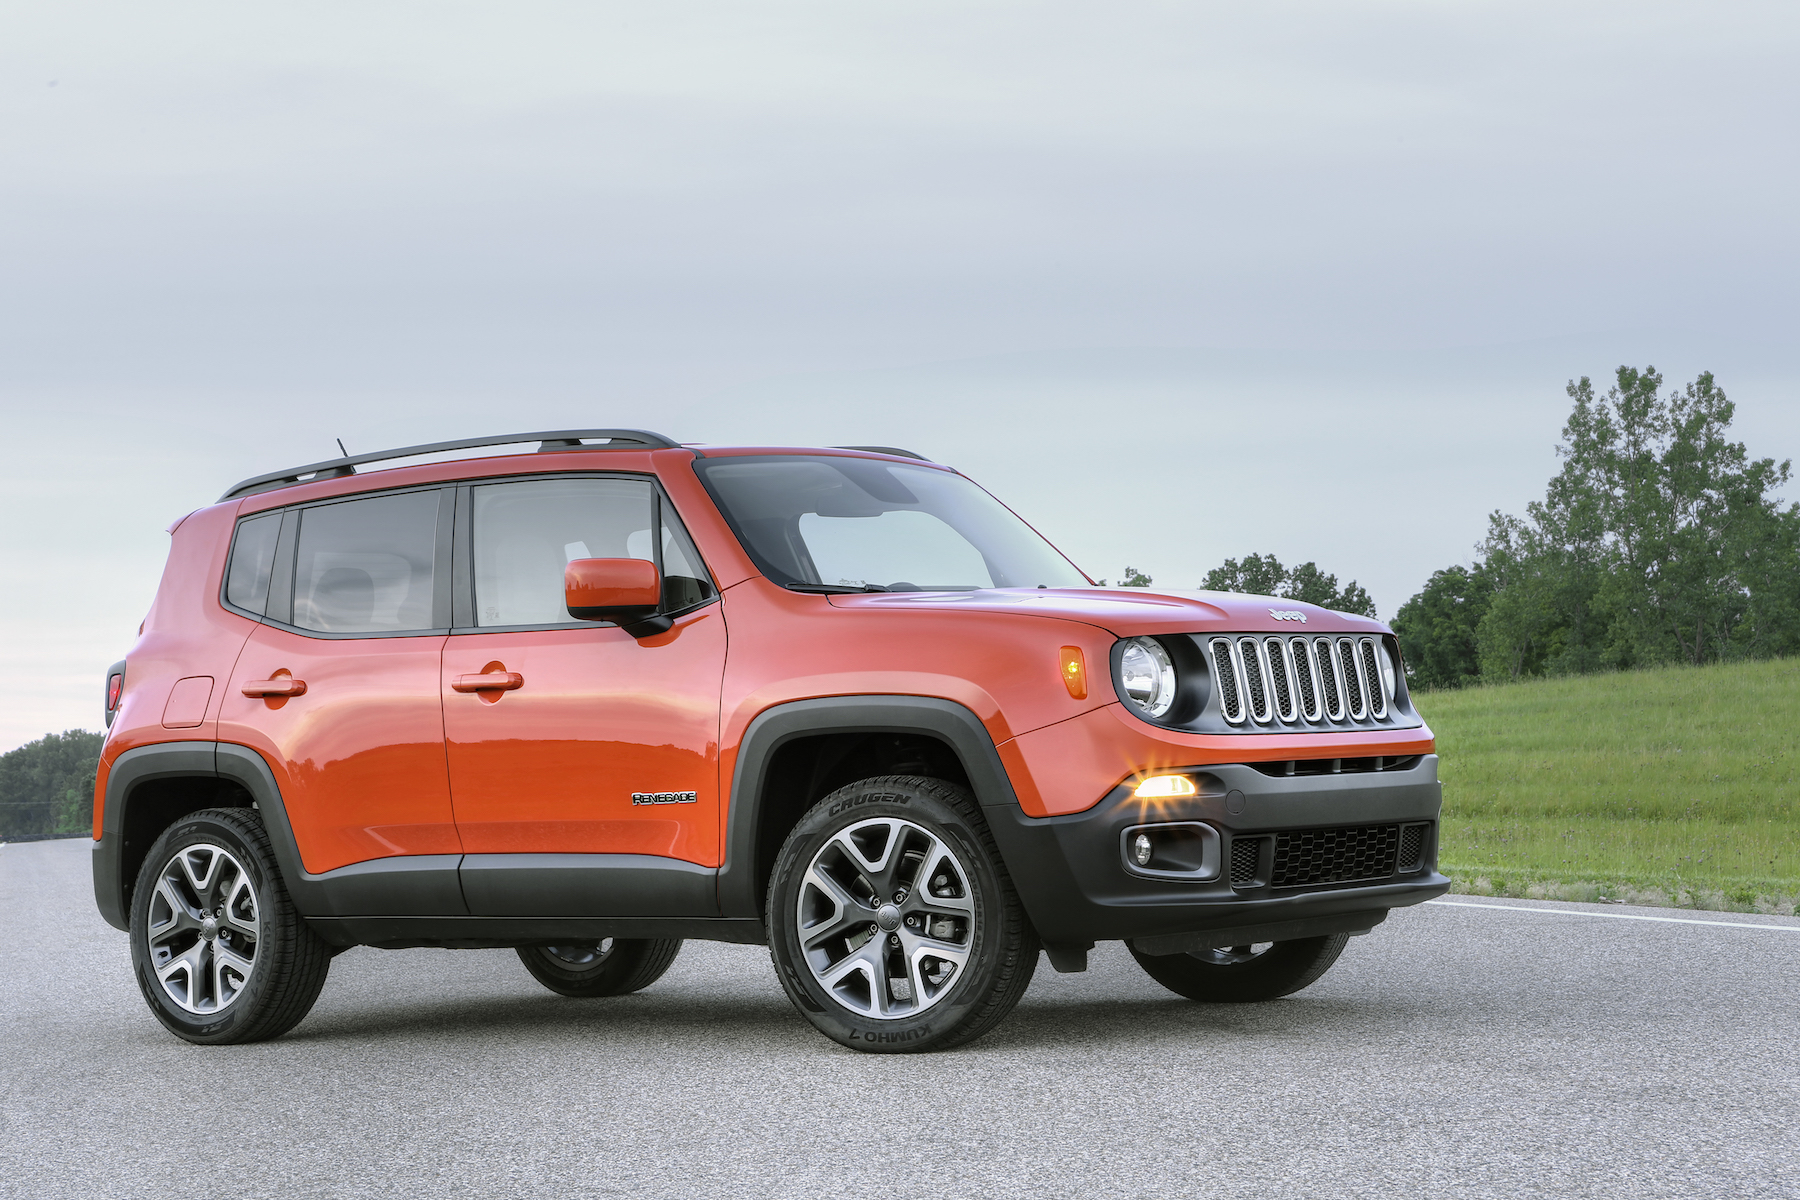 2018 Jeep Renegade Features Review The Car Connection